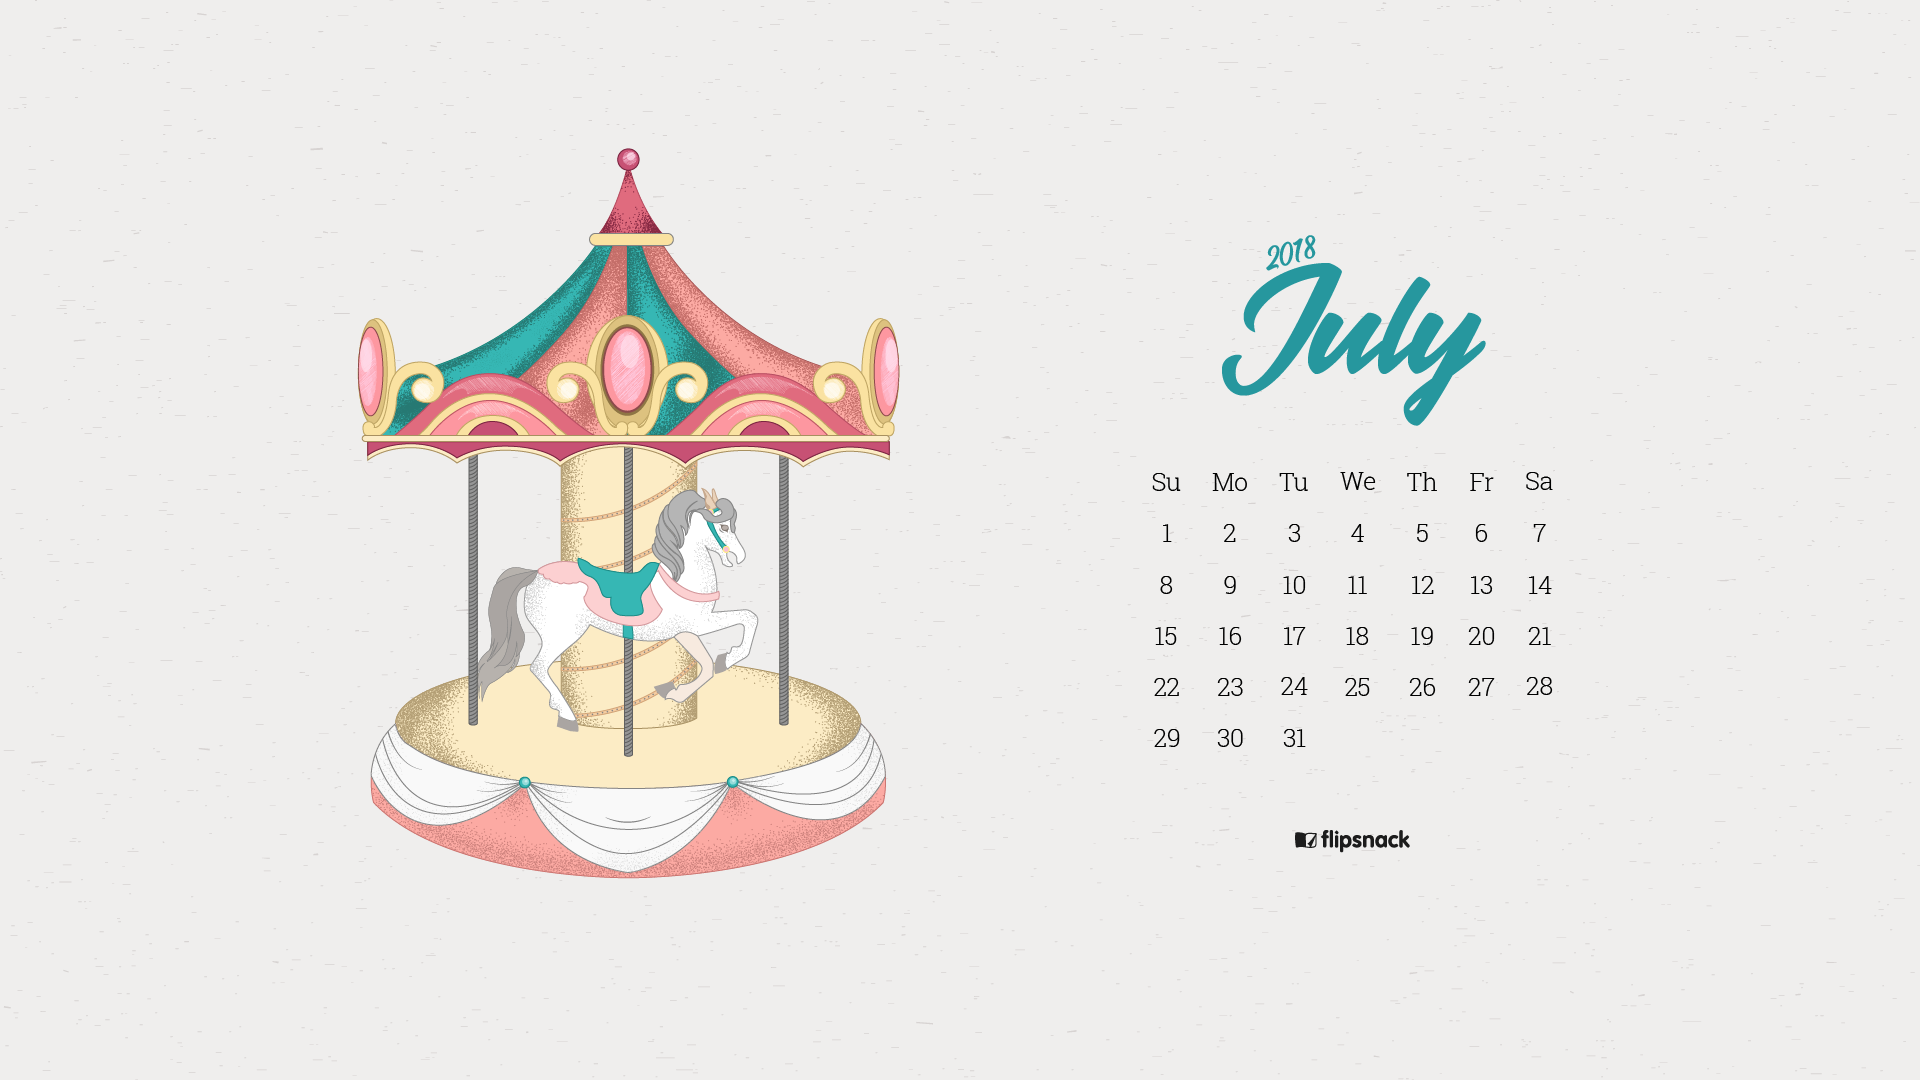 free download 19201080 1366768 6401136 july 2018 wallpaper calendar carousel